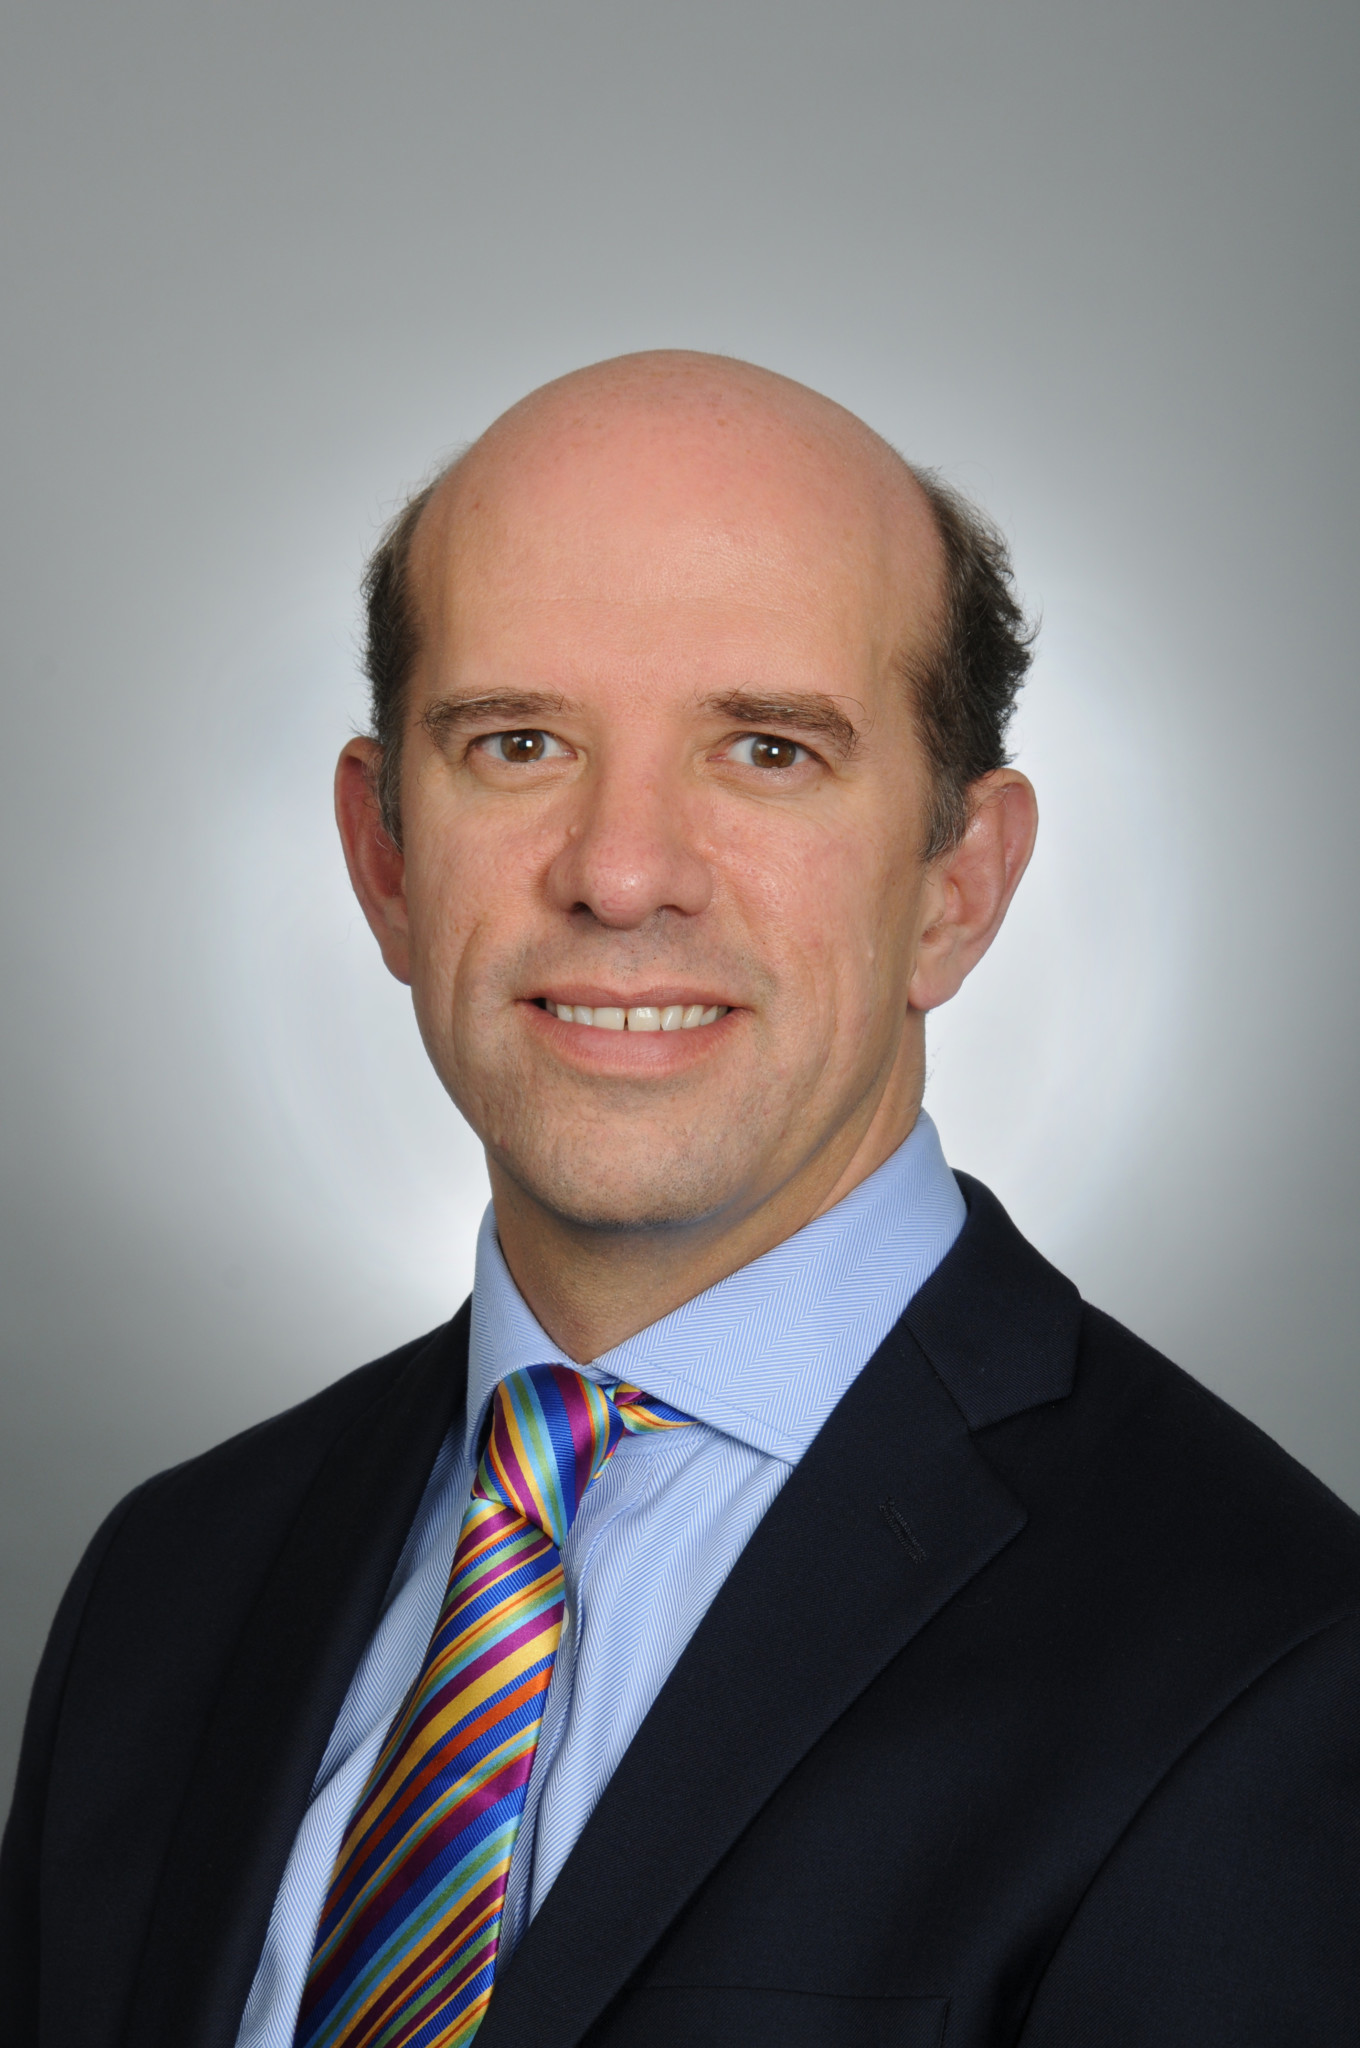 Seb Hobbs, Signet Jewelers President and Chief Customer Officer